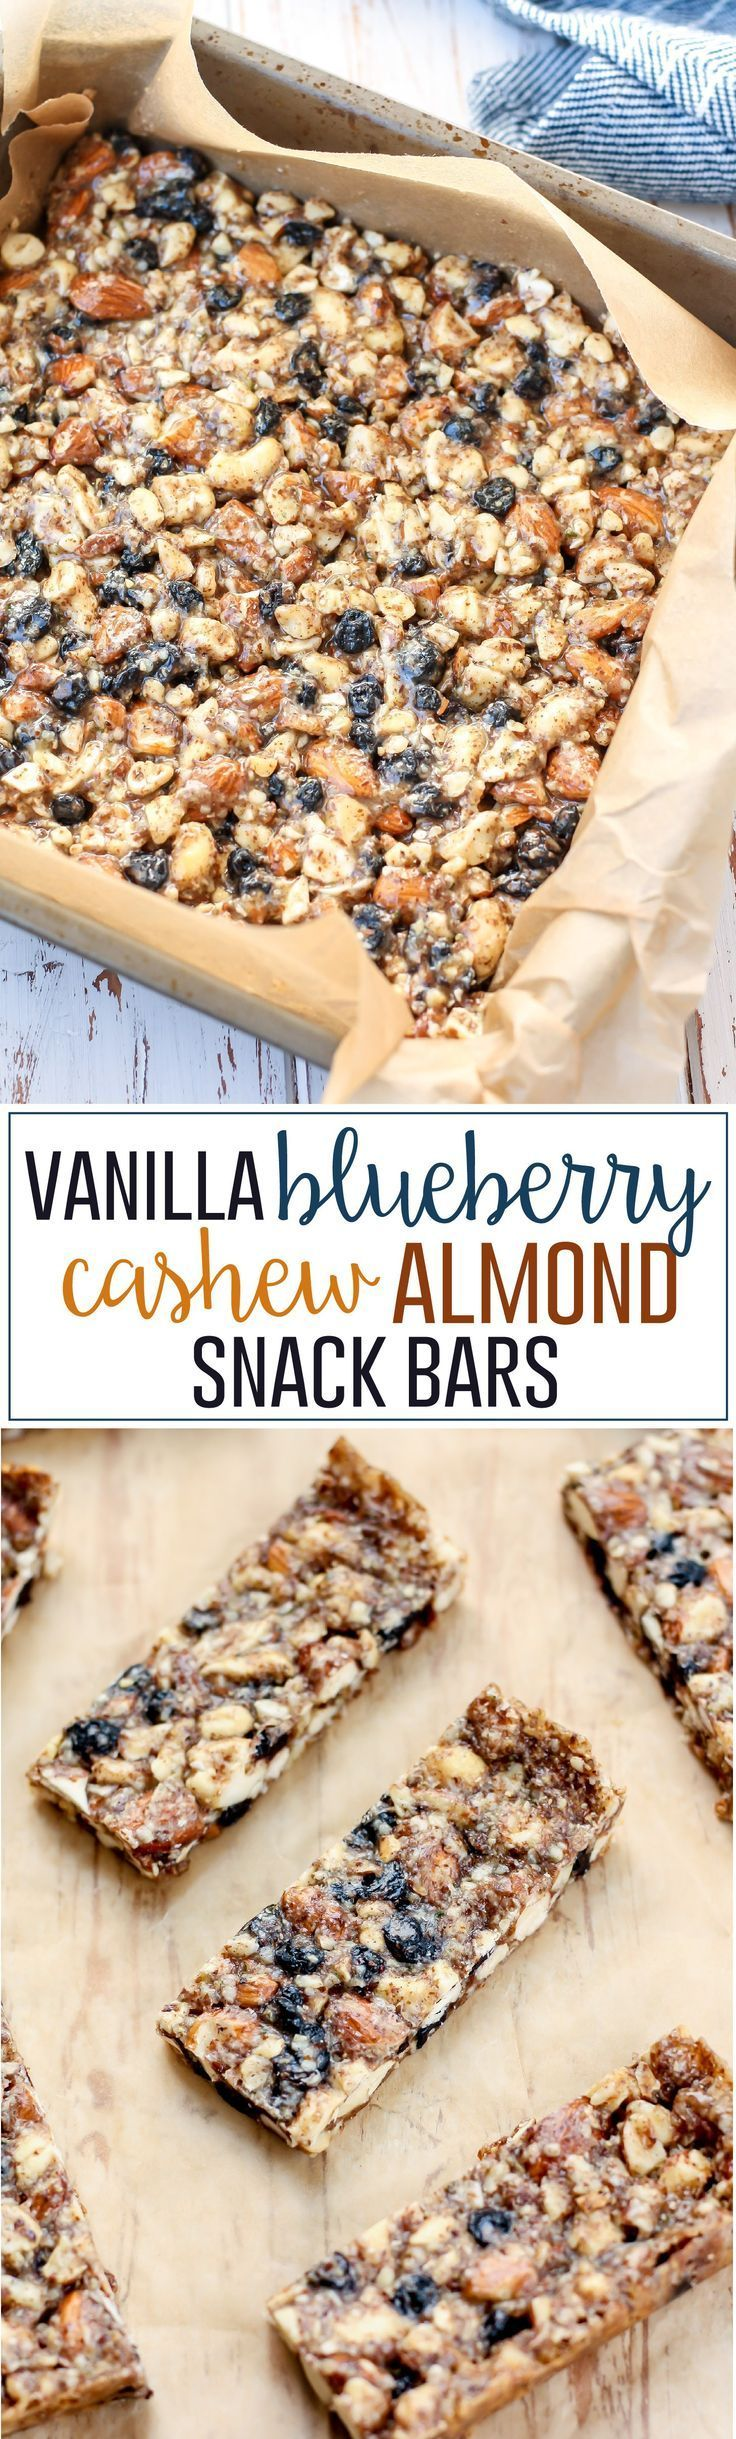 These Vanilla Blueberry Cashew Almond Snack Bars are a simple, yet flavorful blend and so easy to make! Once you try your hand at homemade nut bars, you won't want to go back to store-bought! Wholesome ingredients, vegan, gluten-free, and grain-free.